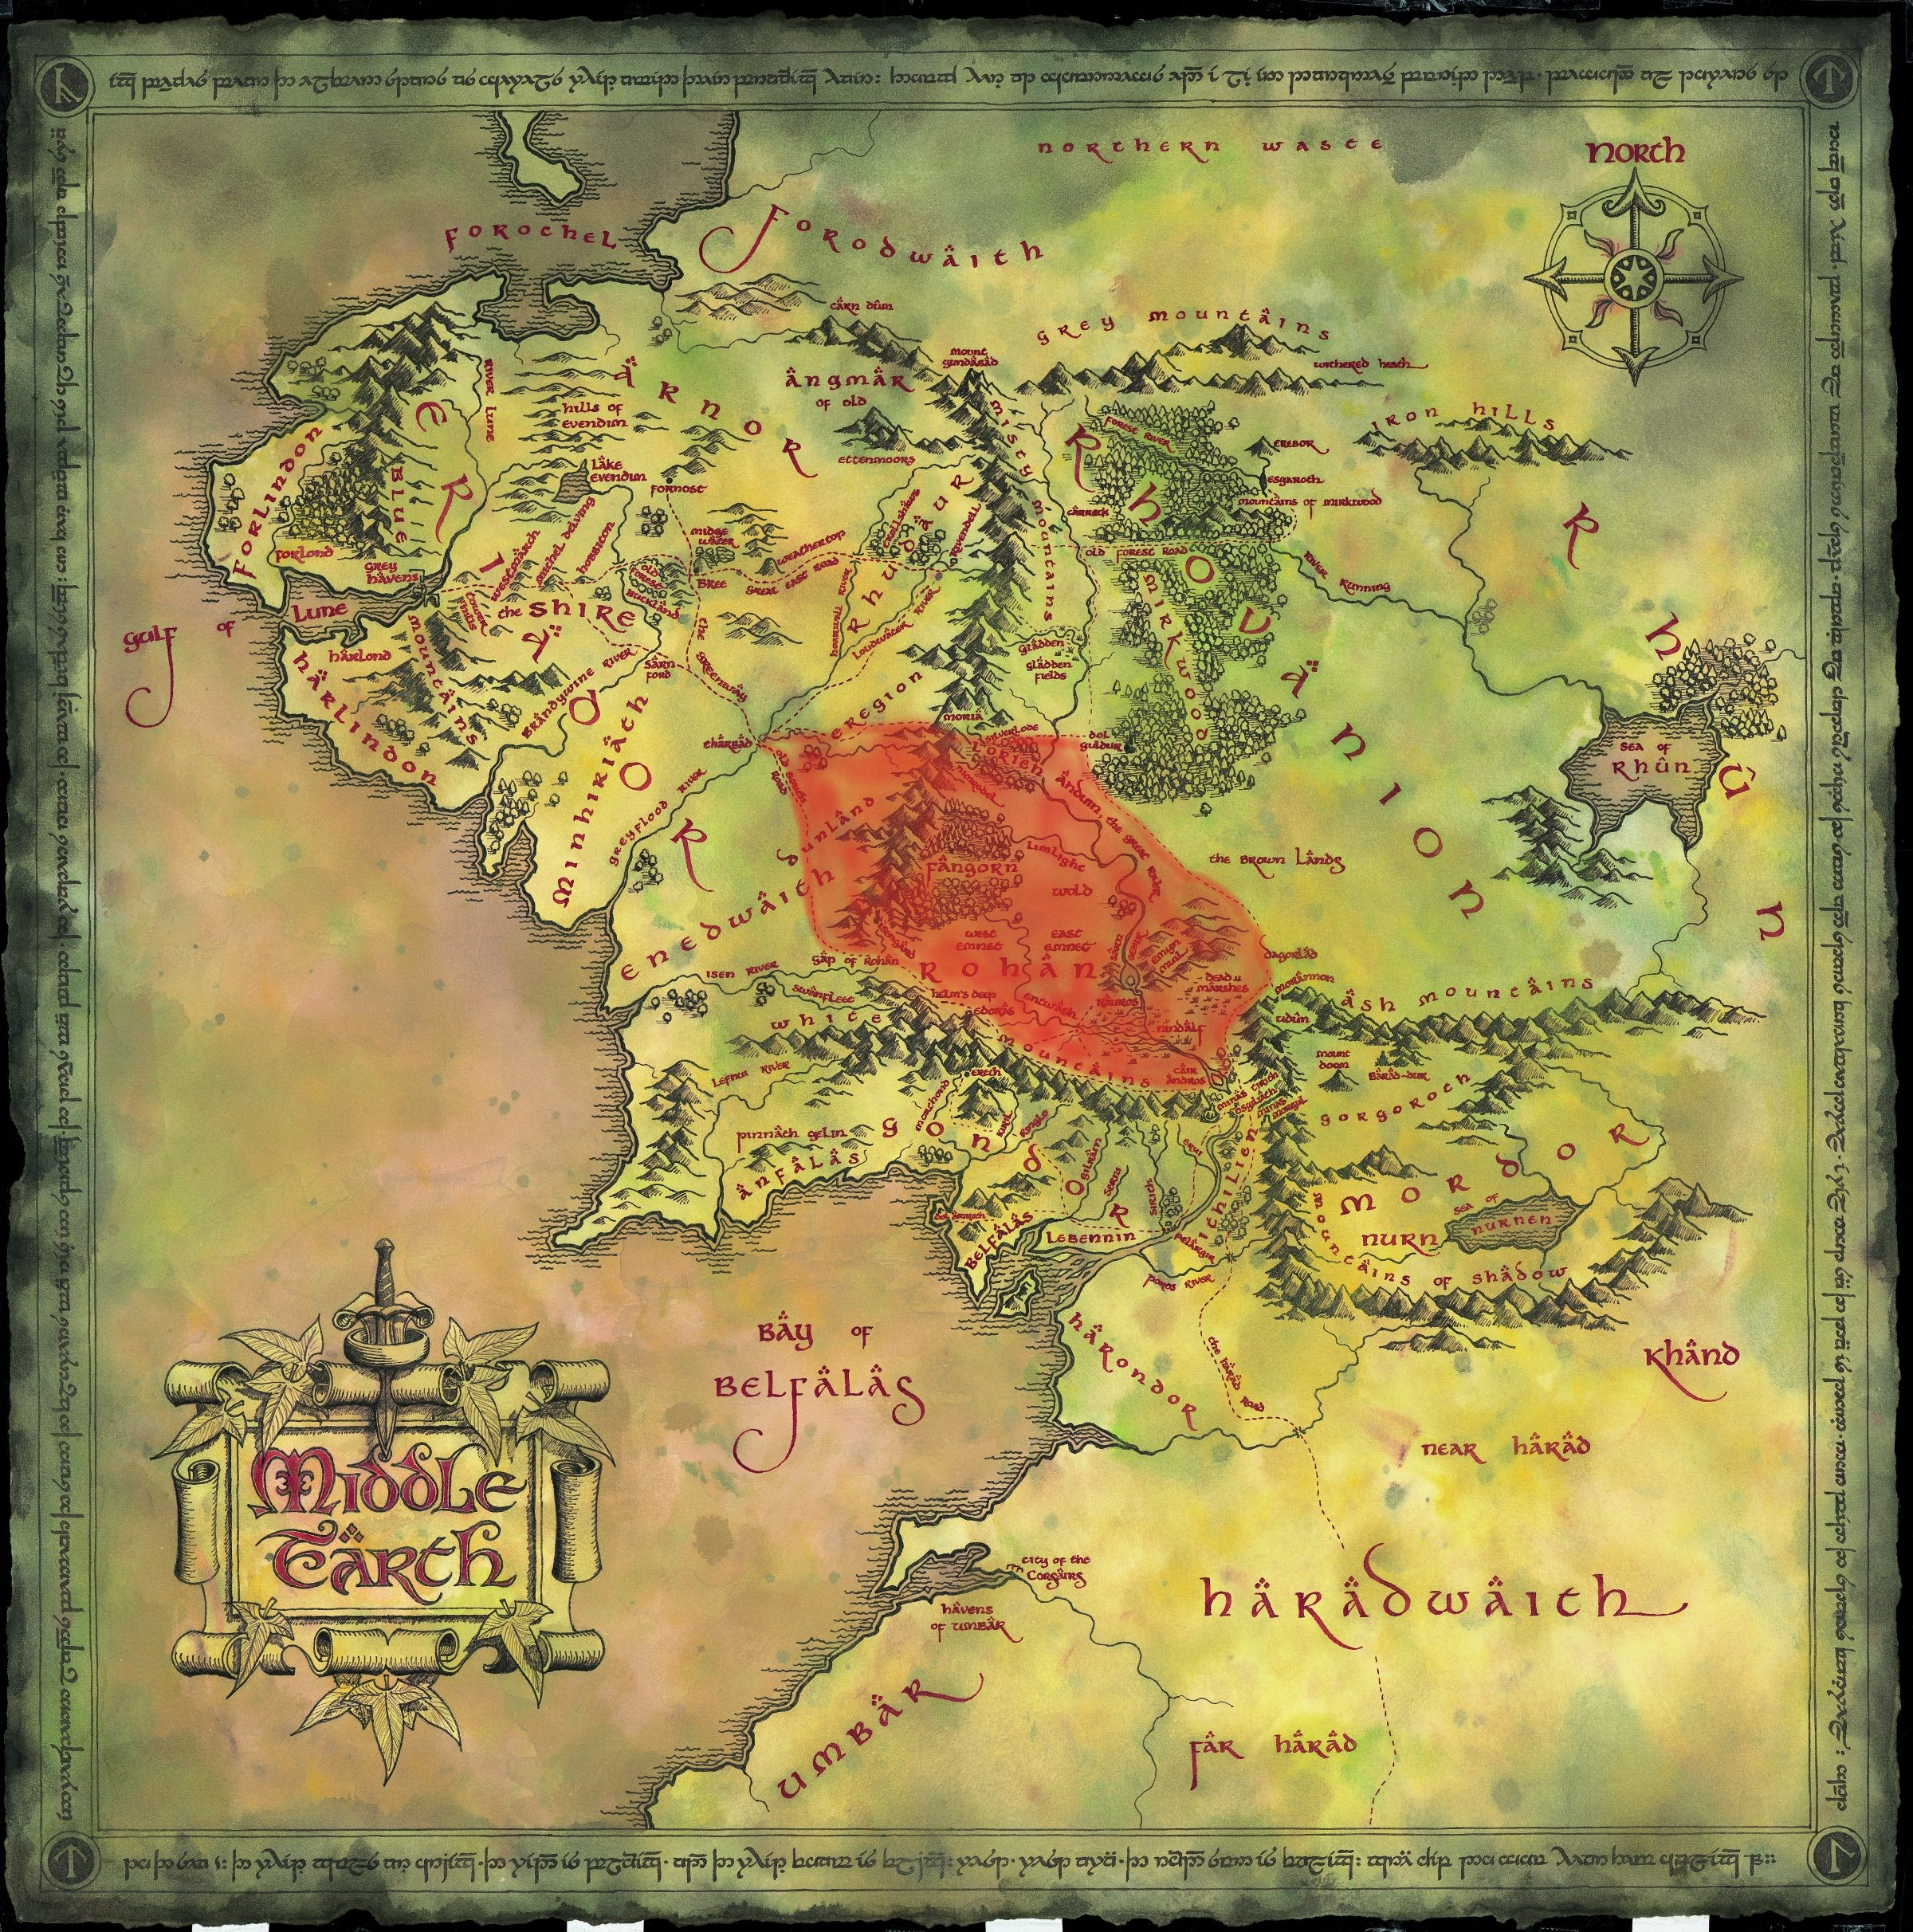 Elves (Middle-earth): history, names. Stories of Middle-earth 8